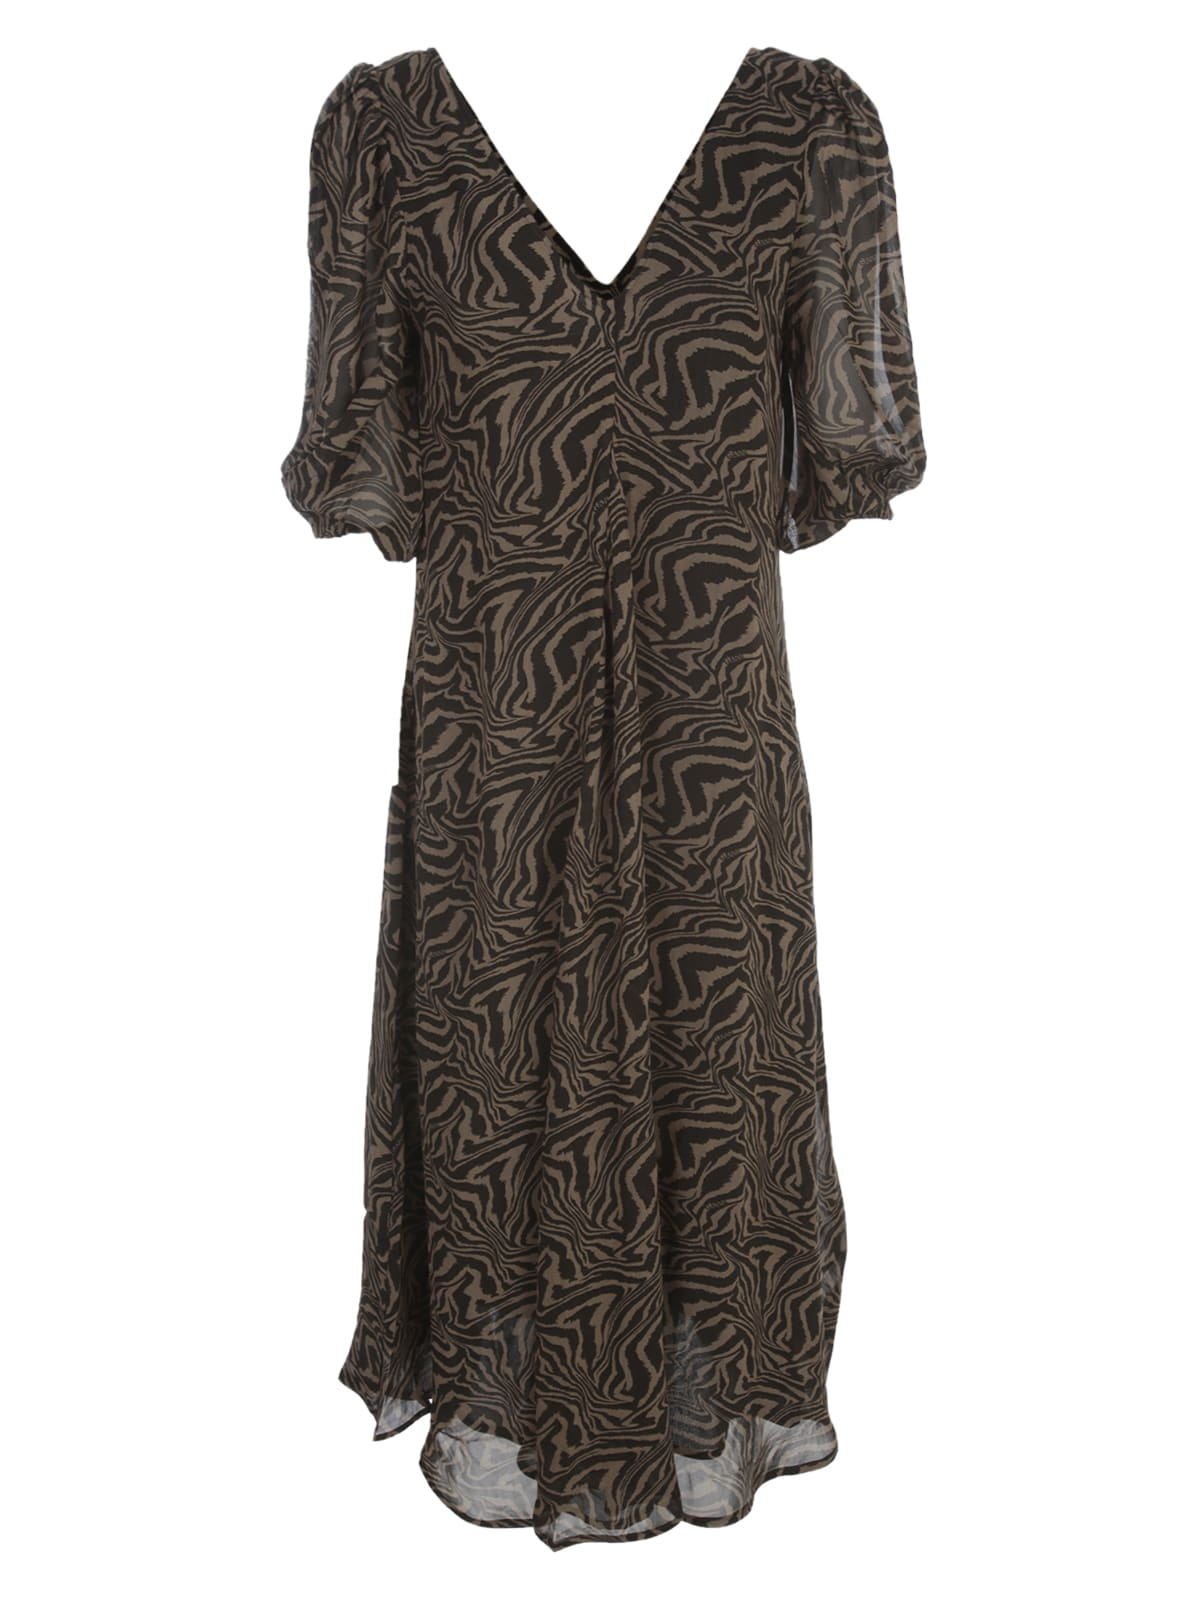 Buy Ganni Printed Georgette Maxi Dress 3/4s V Neck online, shop Ganni with free shipping